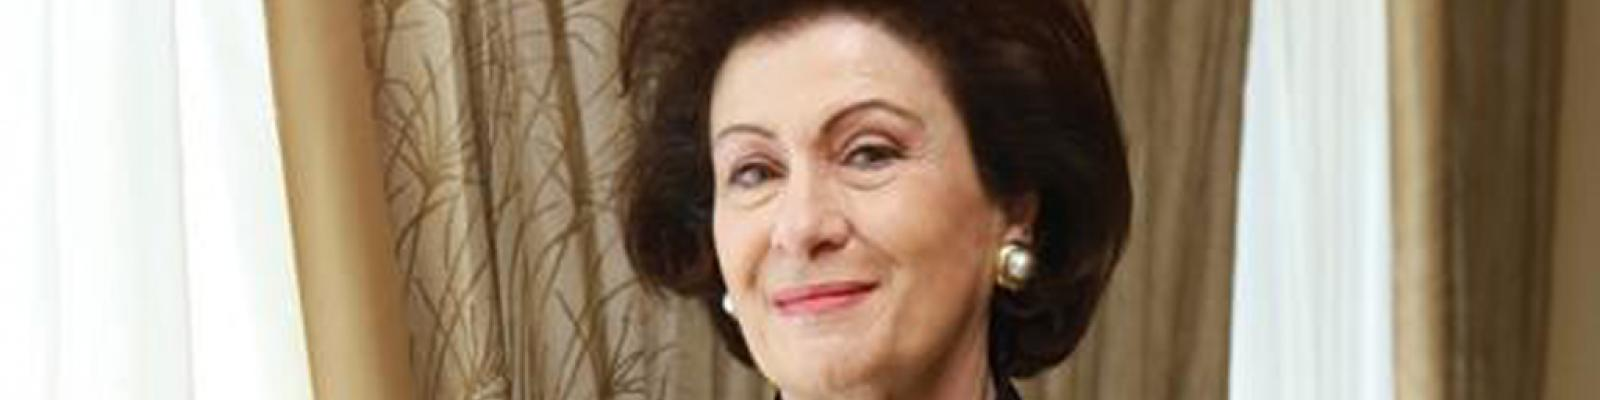 Haifa Al Kaylani Named Among the 100 Most Powerful Arab Women